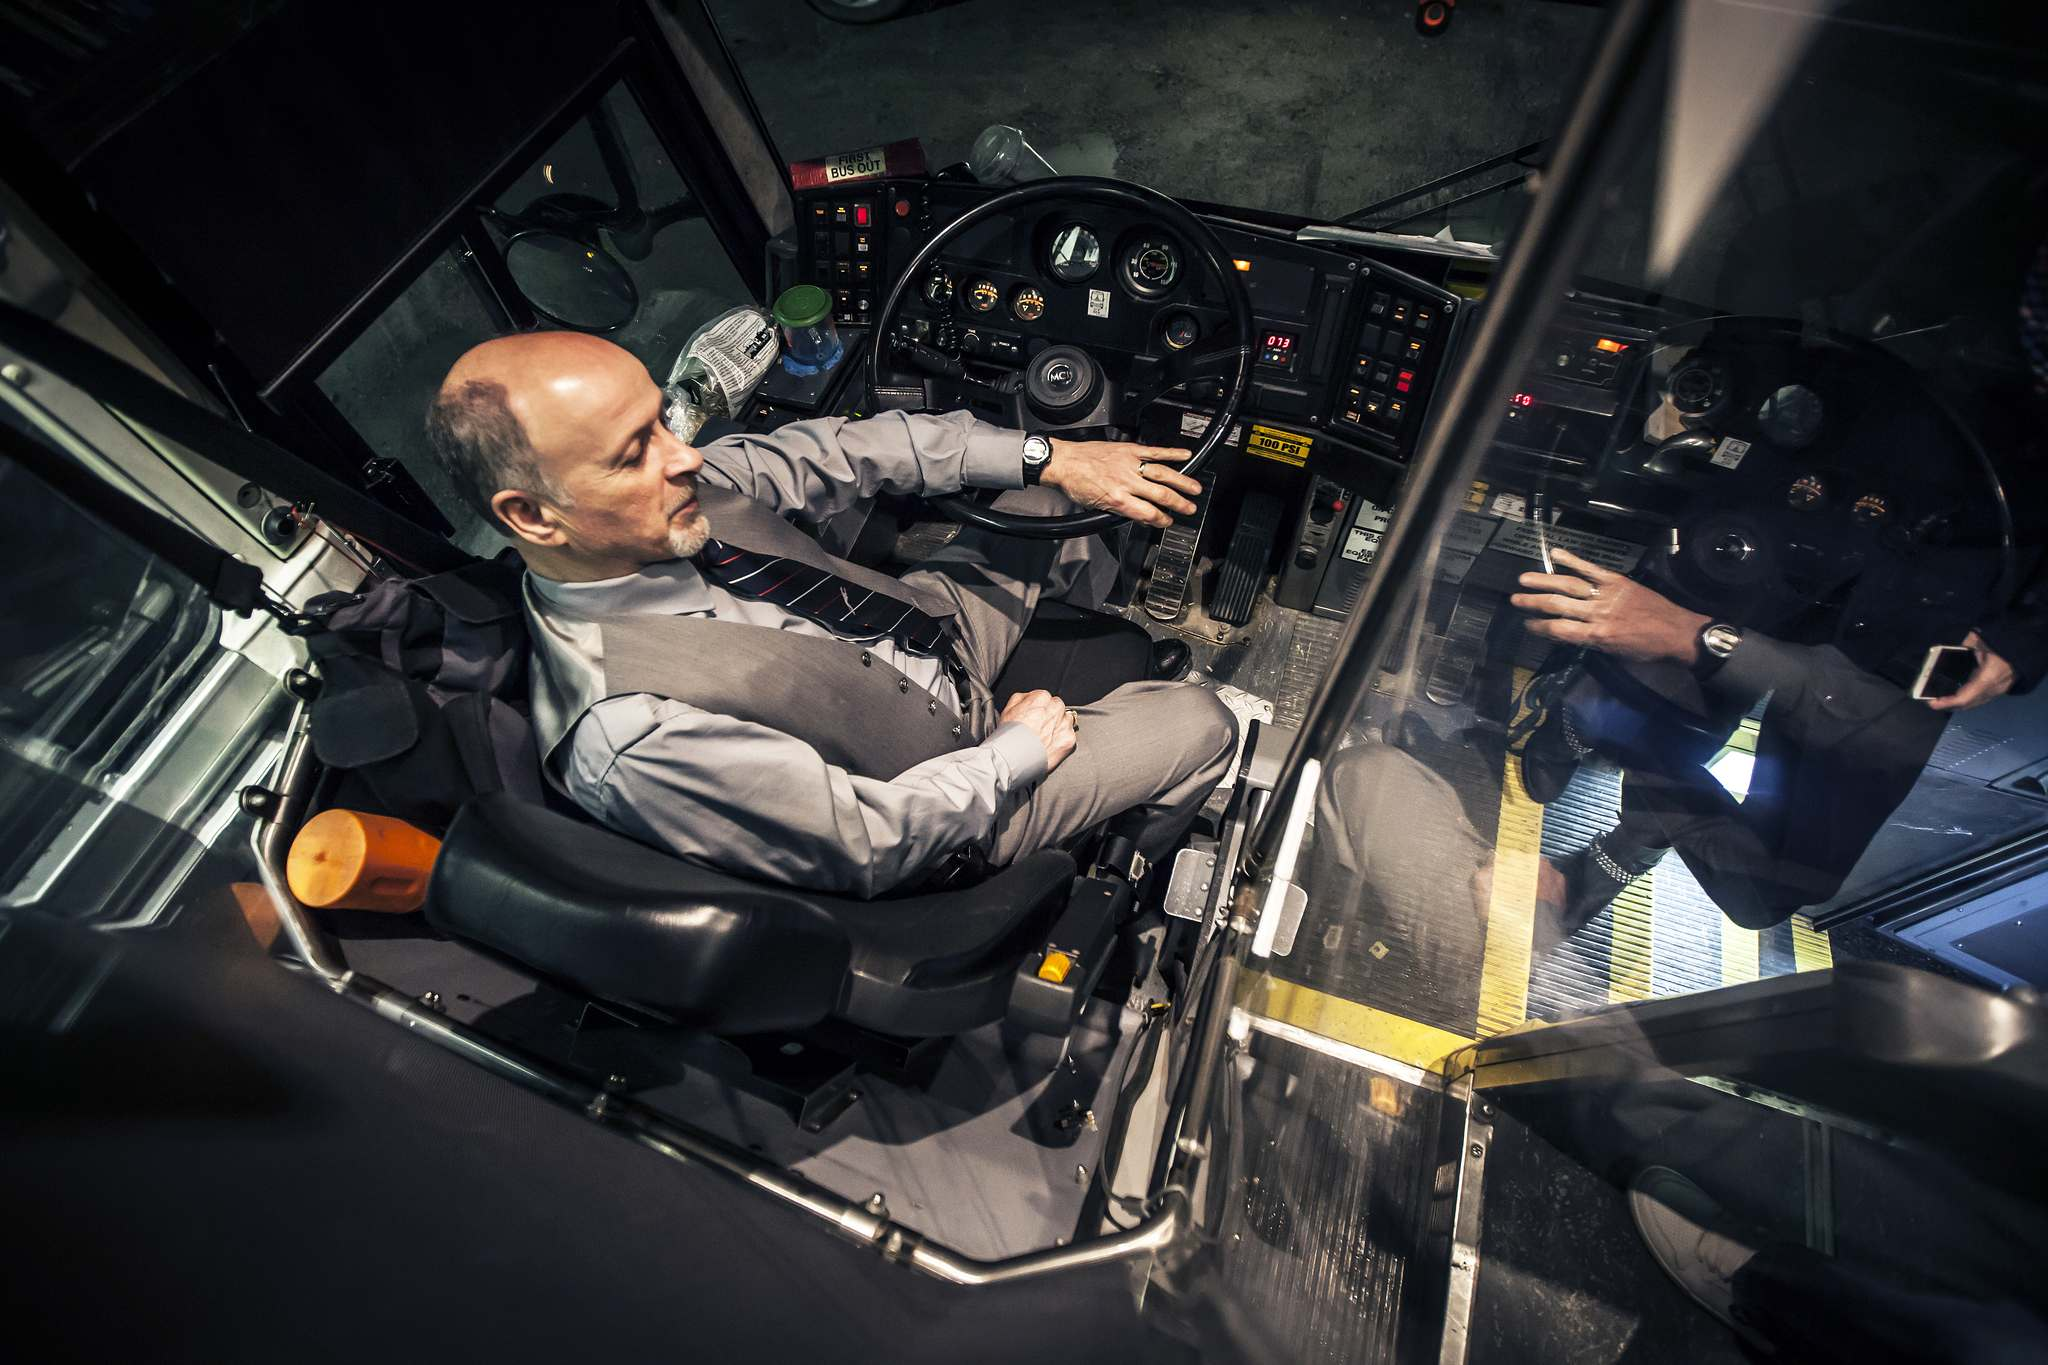 Stern sits in his cockpit and chats with a passenger.